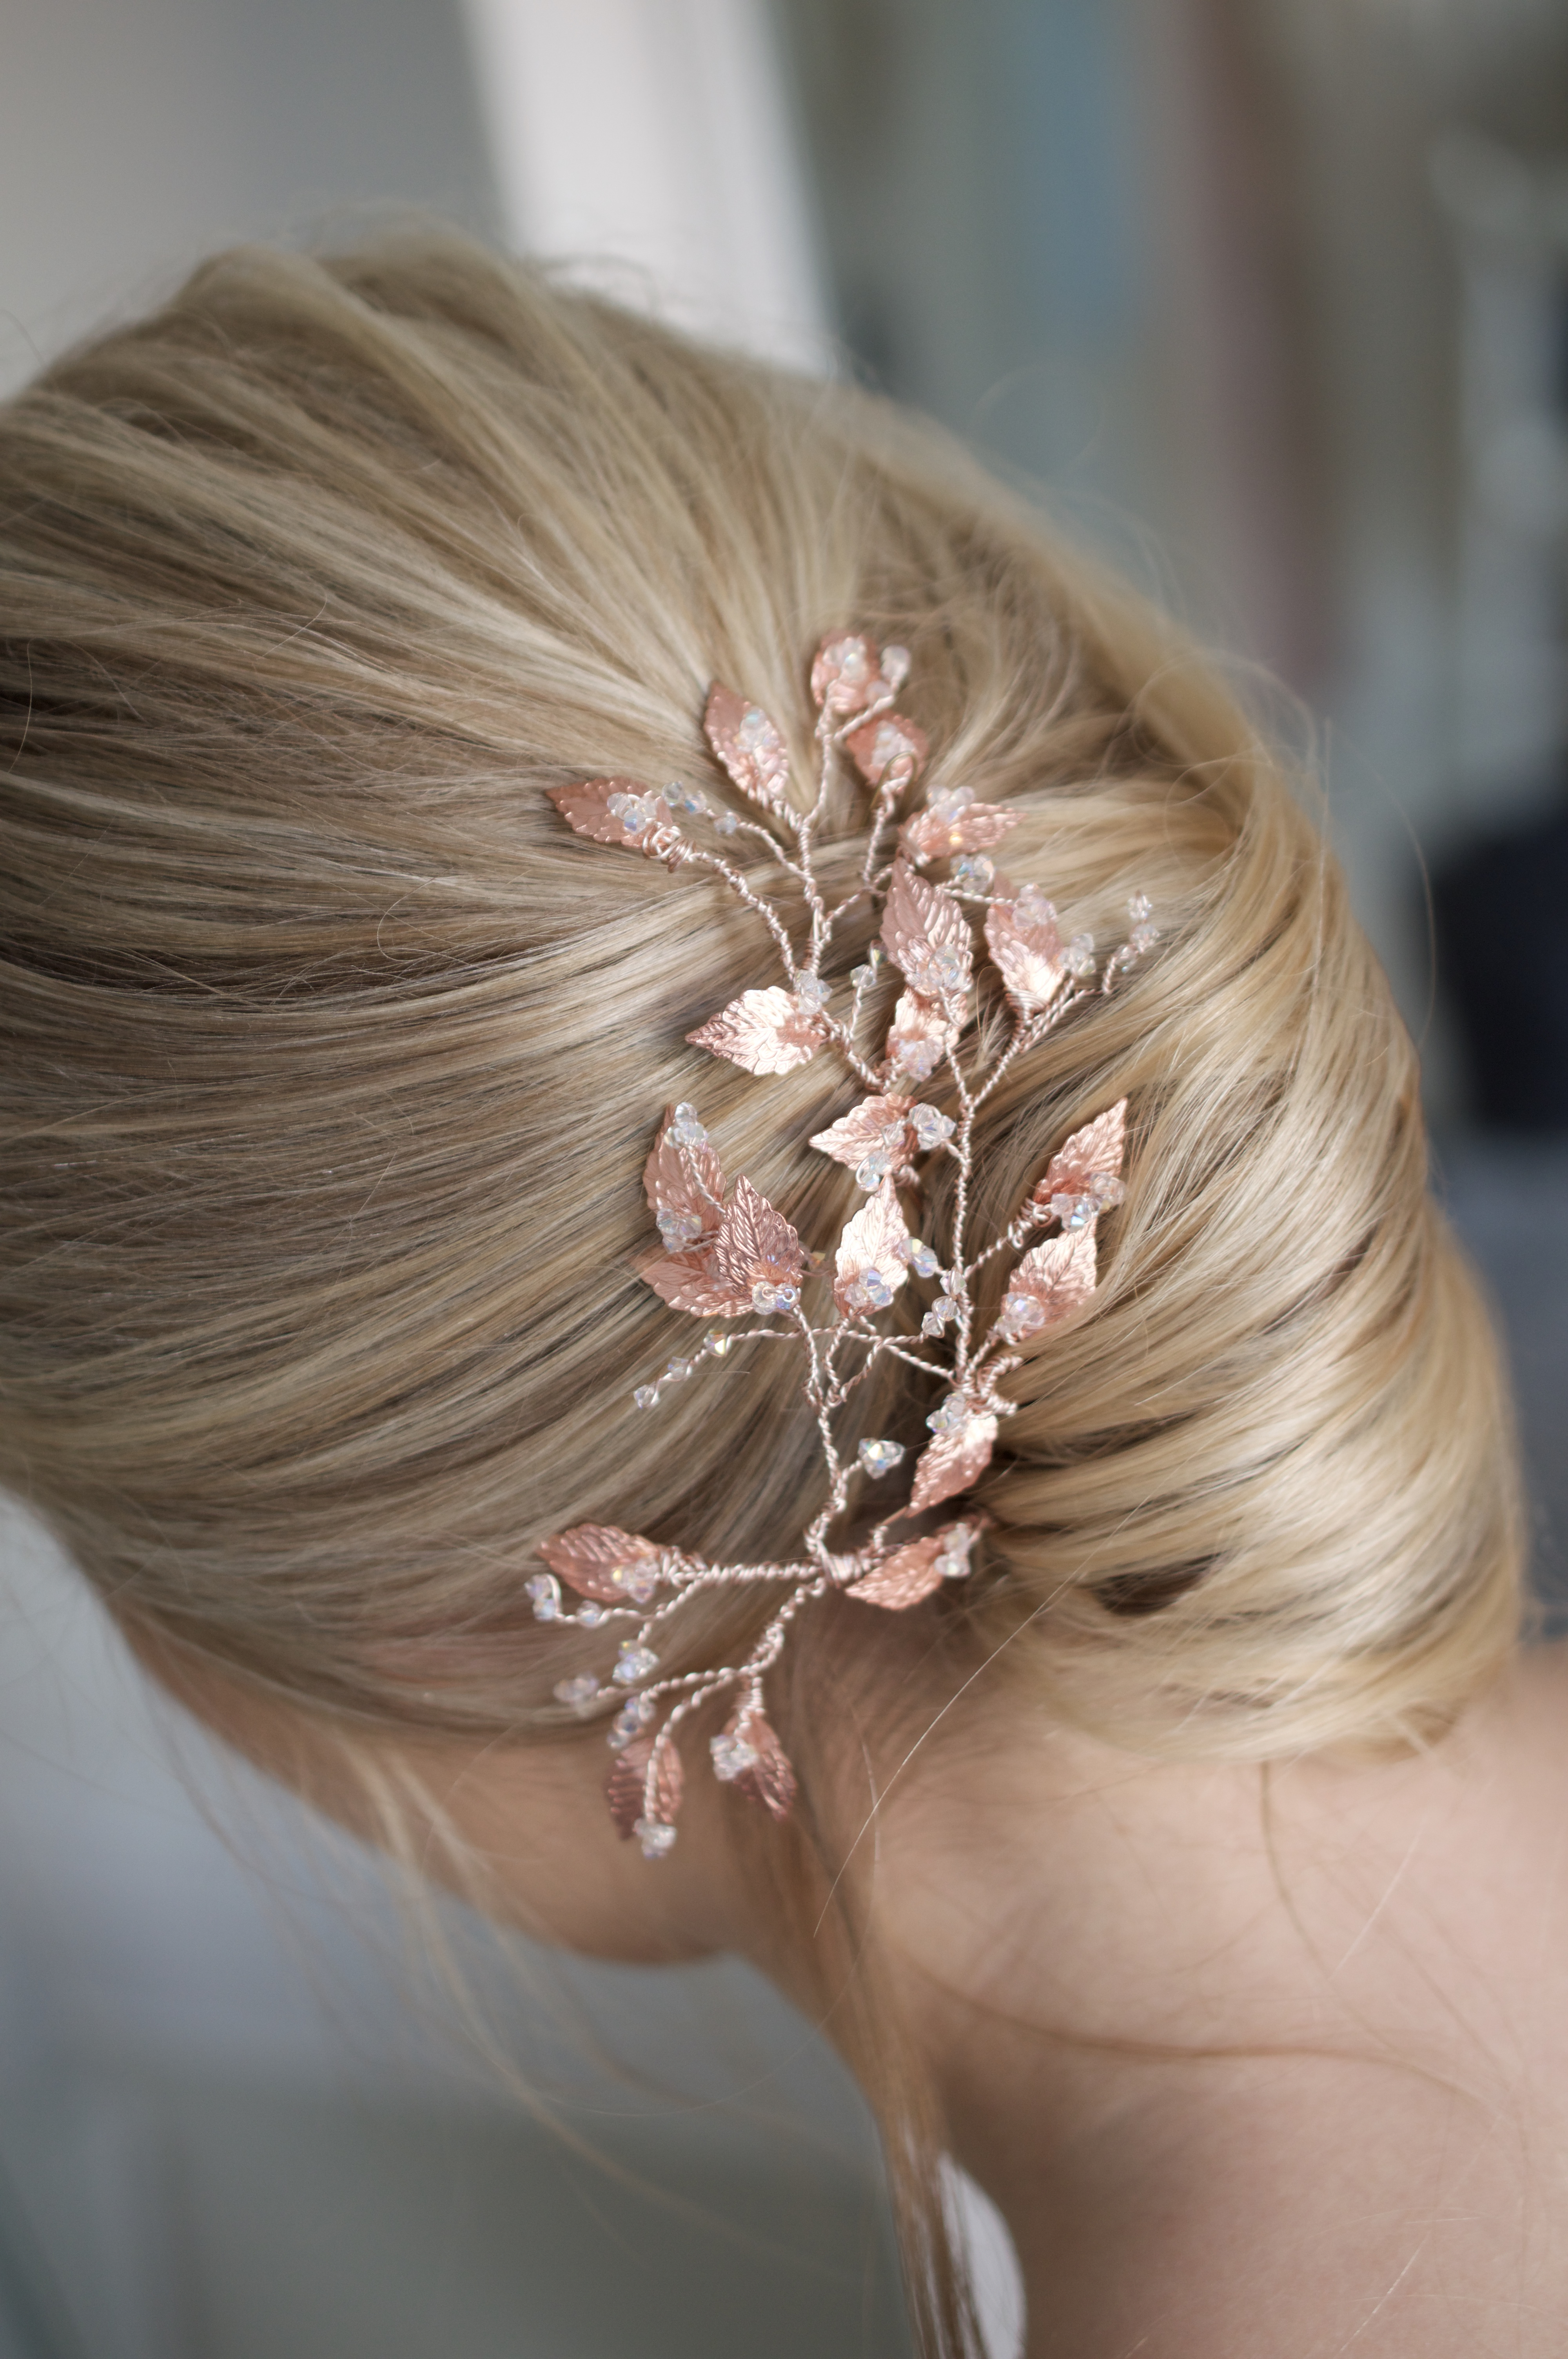 rose gold hair pins, rose gold hairpins, wedding hairpins, wedding hair pins, bridal hair accessories, wedding hair accessories, bridal headpiece, wedding headpiece, bohemian bride, boho bride, outdoor bride, destination bride, foliage hair pins